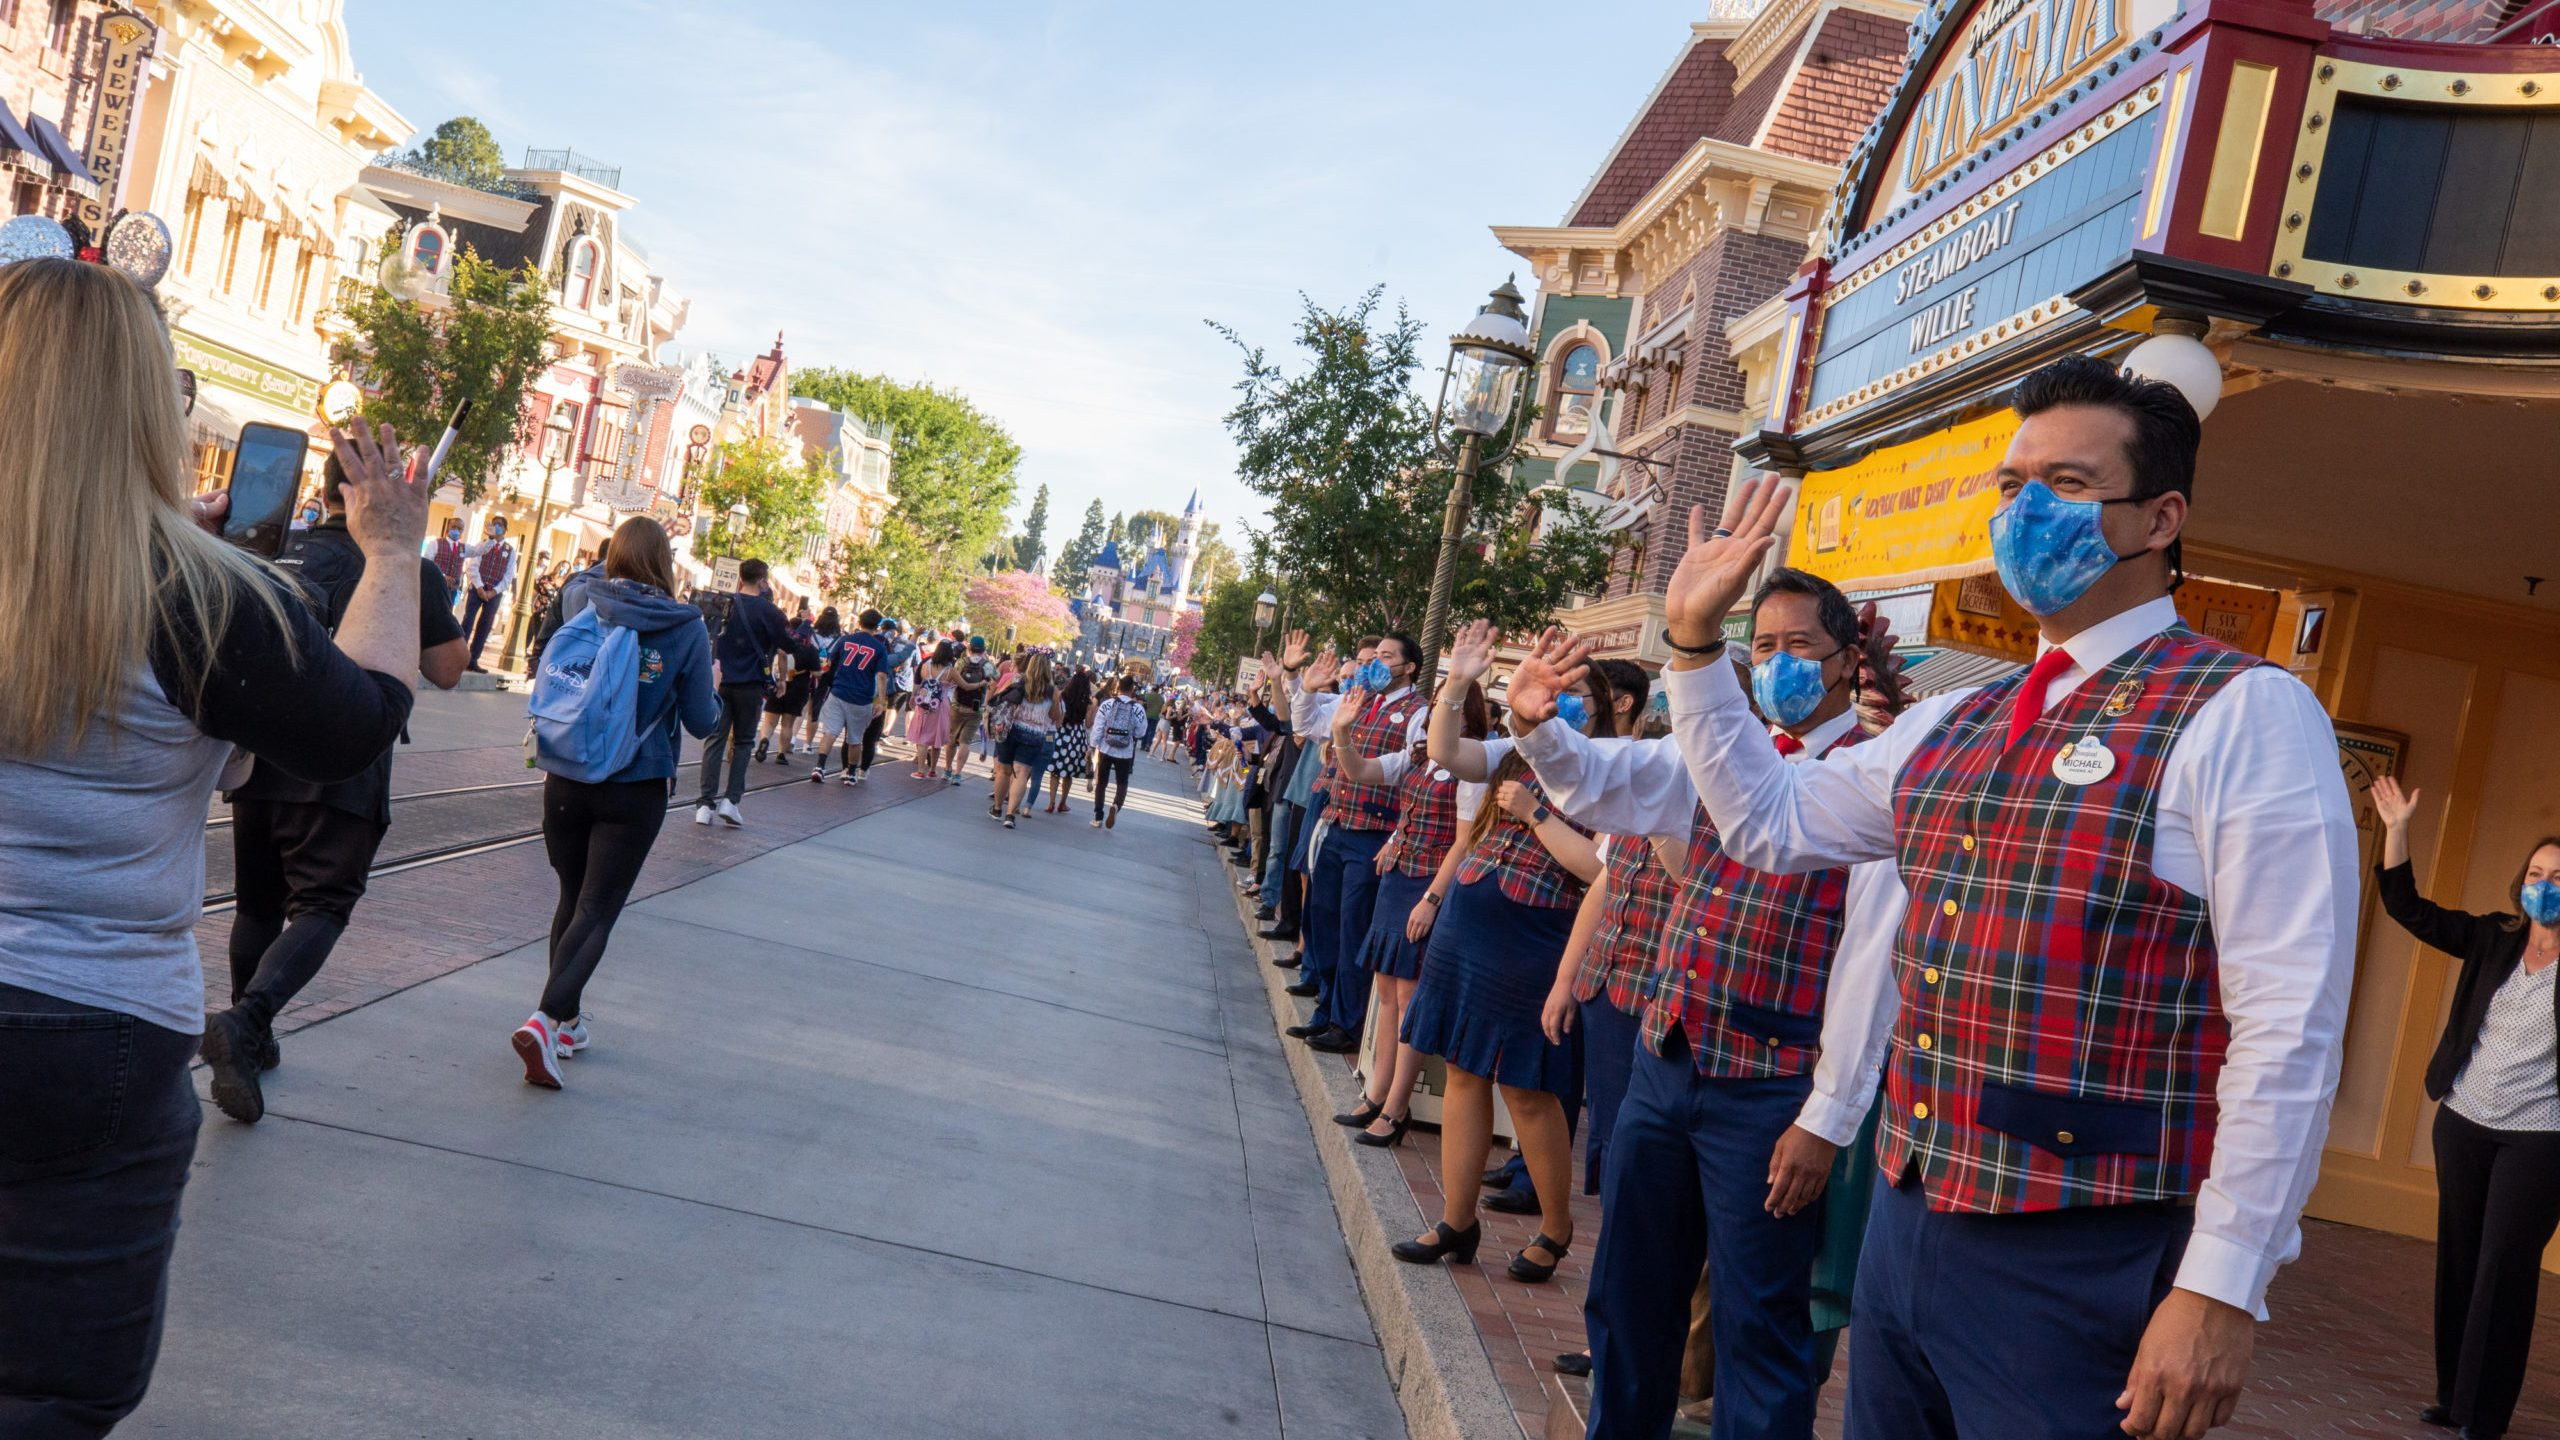 In this handout photo provided by Disneyland Resort, guests are waved to by workers as they take in the sights and sounds of Main Street U.S.A. at the Disneyland Resort on April 30, 2021 in Anaheim, Calif. Guests are being welcomed back as Disneyland Park, Disney California Adventure Park and Disney's Grand Californian Hotel & Spa are reopening. (Christian Thompson/Disneyland Resort via Getty Images)